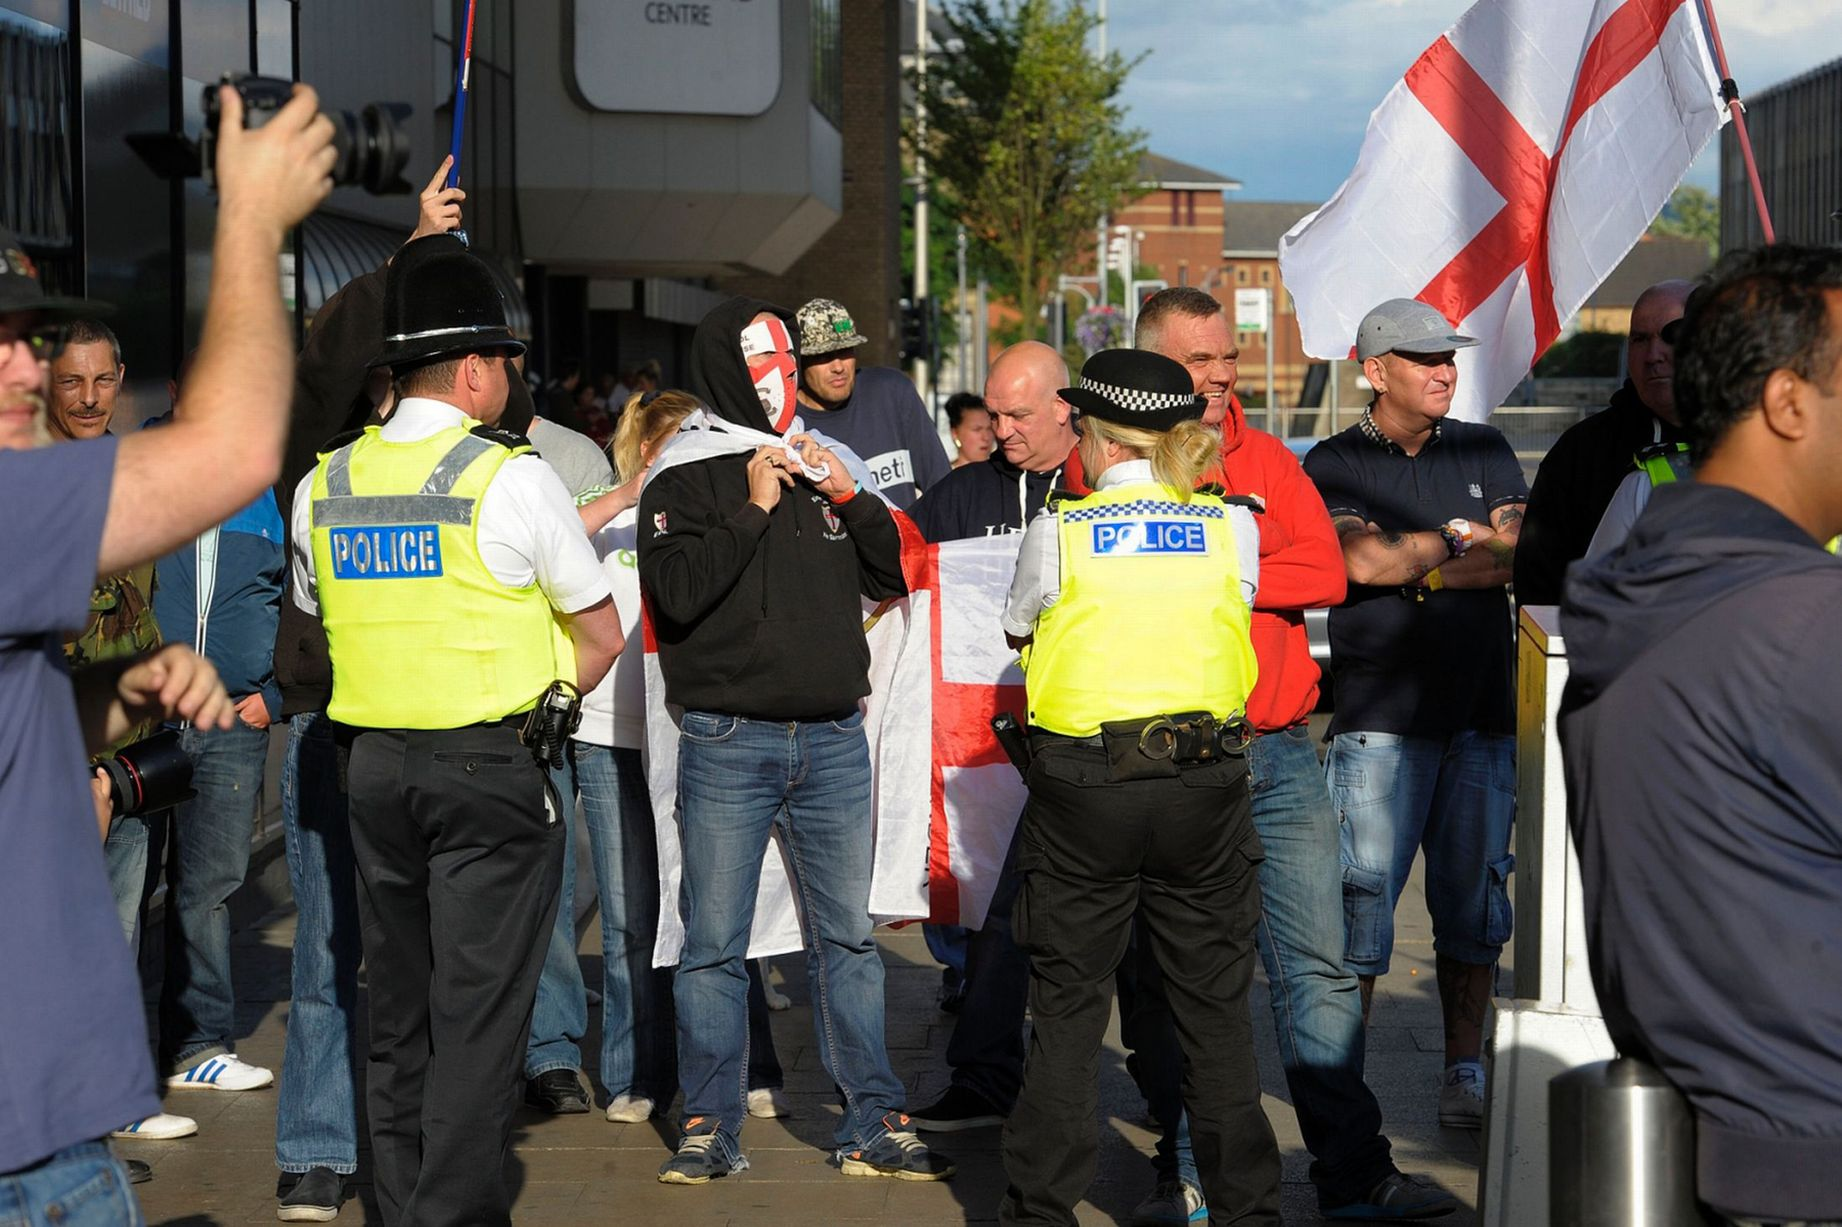 EDL disrupt Teeside Palestine Solidarity vigil in Middlesbrough